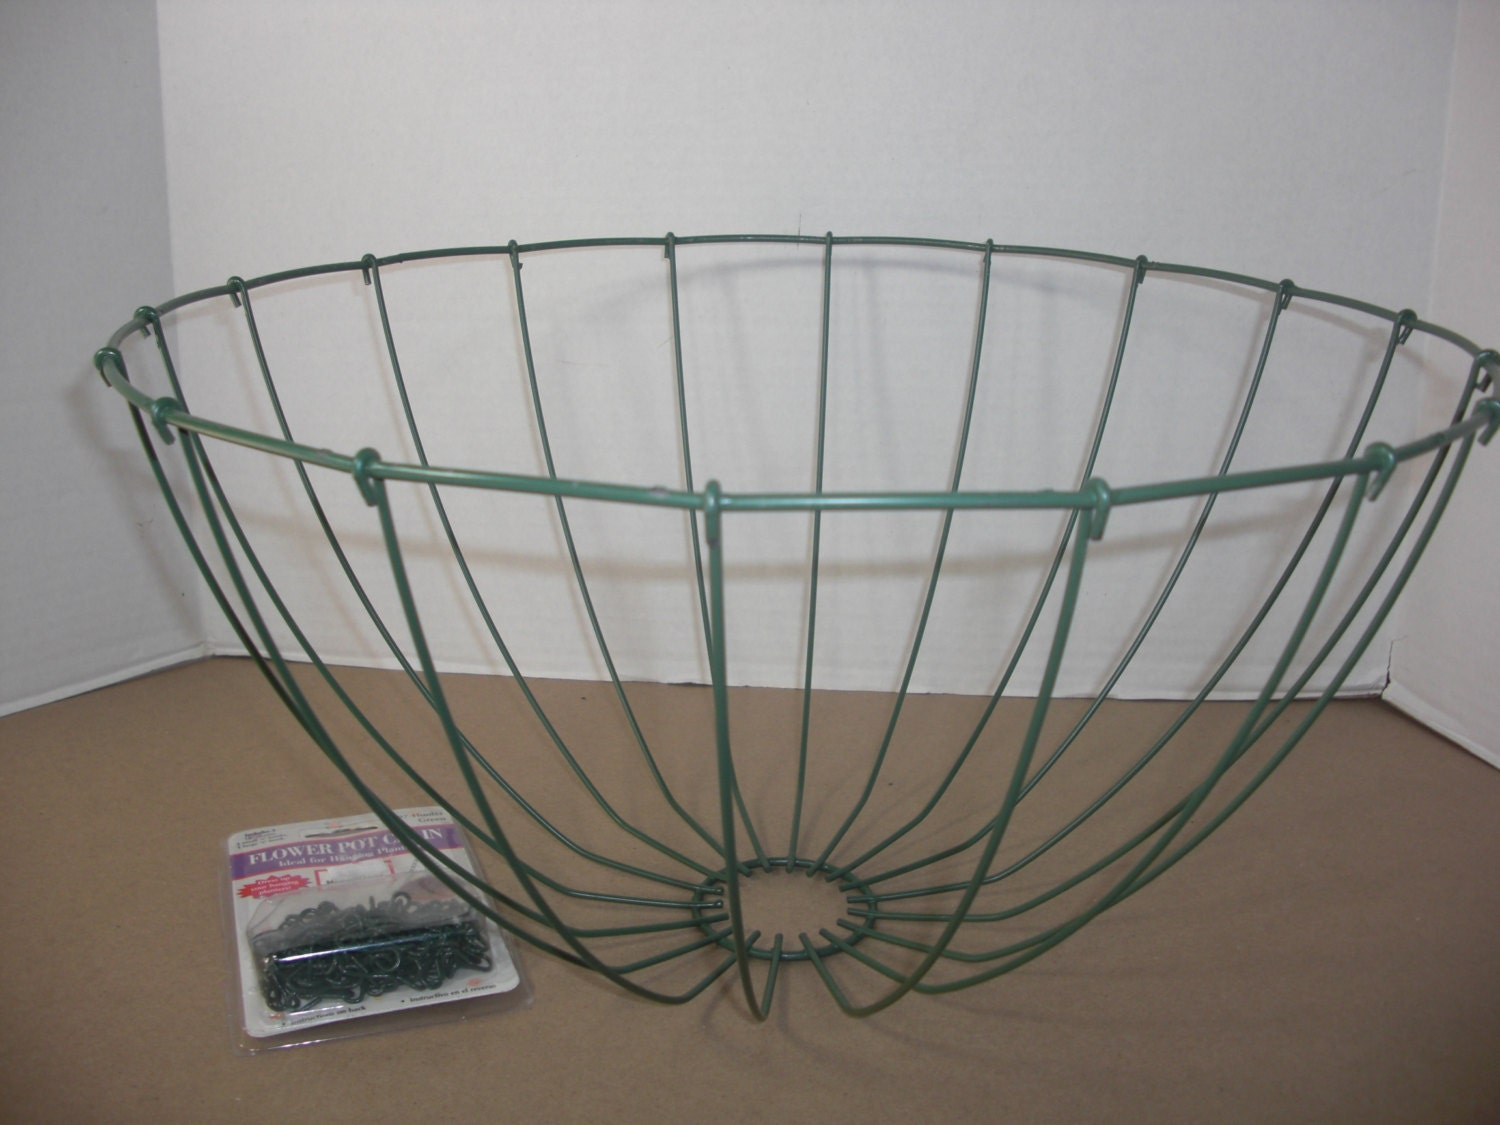 Metal Flower Hanging Baskets : Hanging plant container wire basket w chain green metal